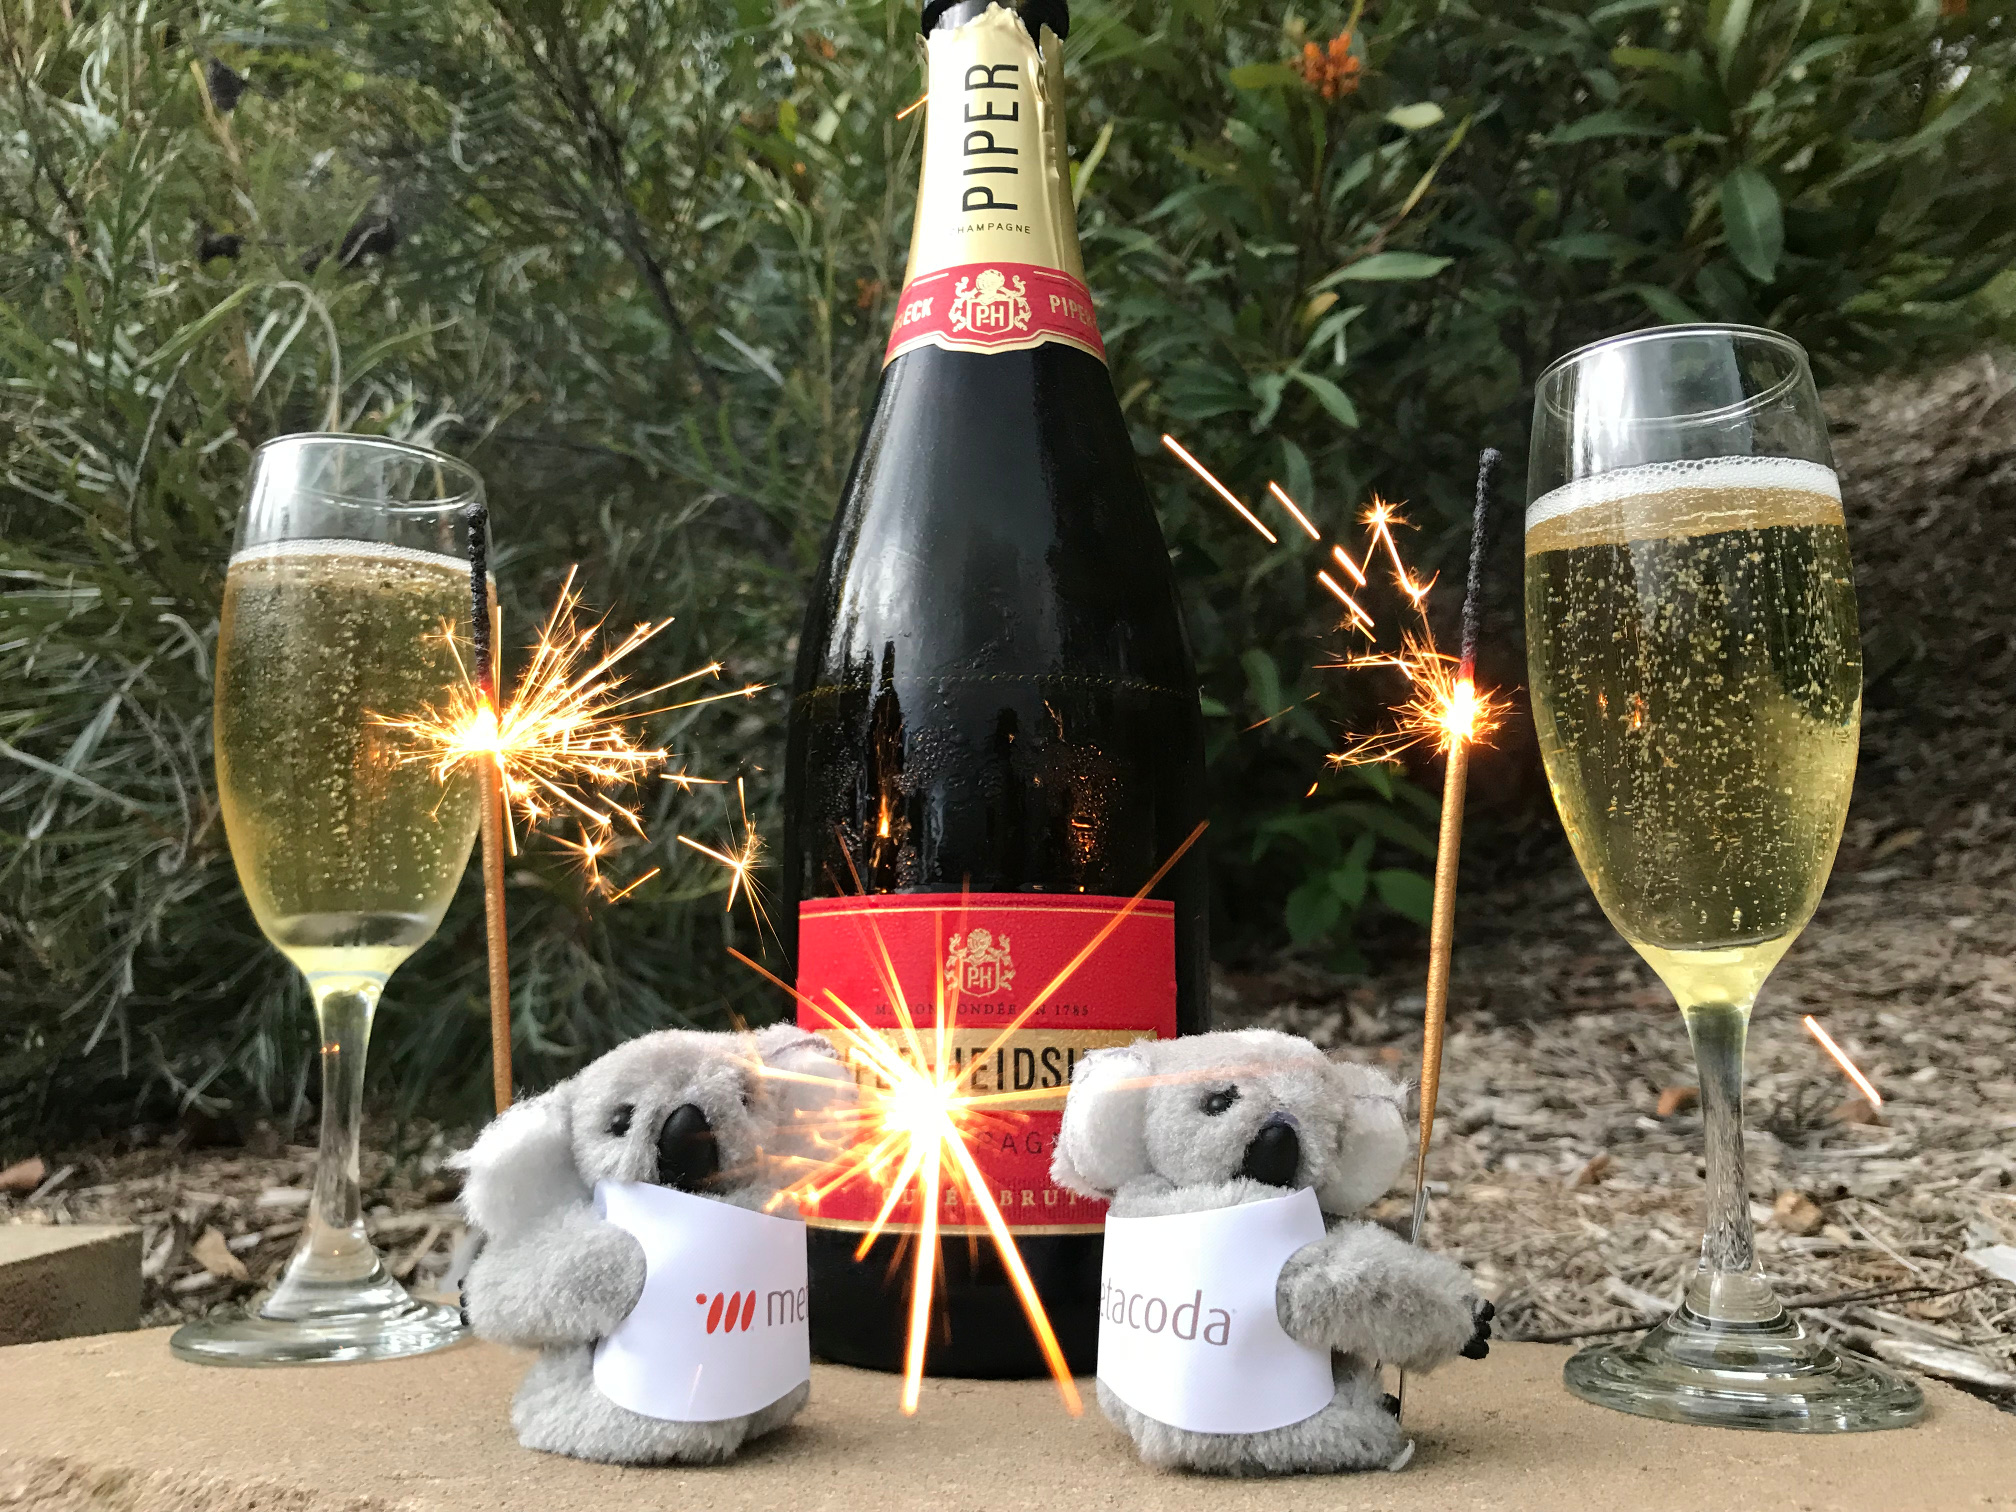 Metacoda Koalas celebrate the new year